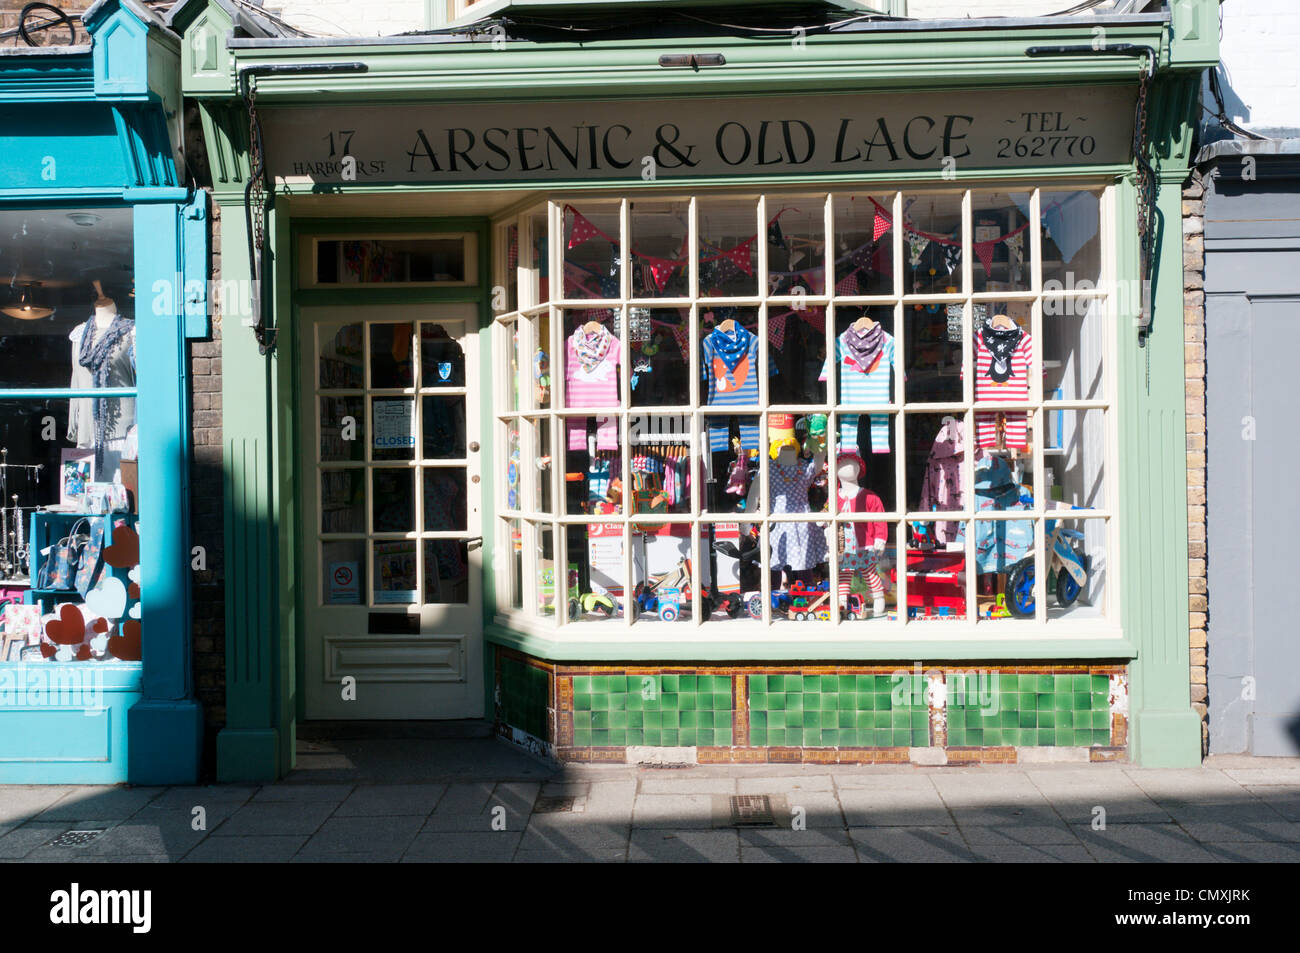 The Arsenic & Old Lace children's clothing shop in Whitstable, Kent. - Stock Image